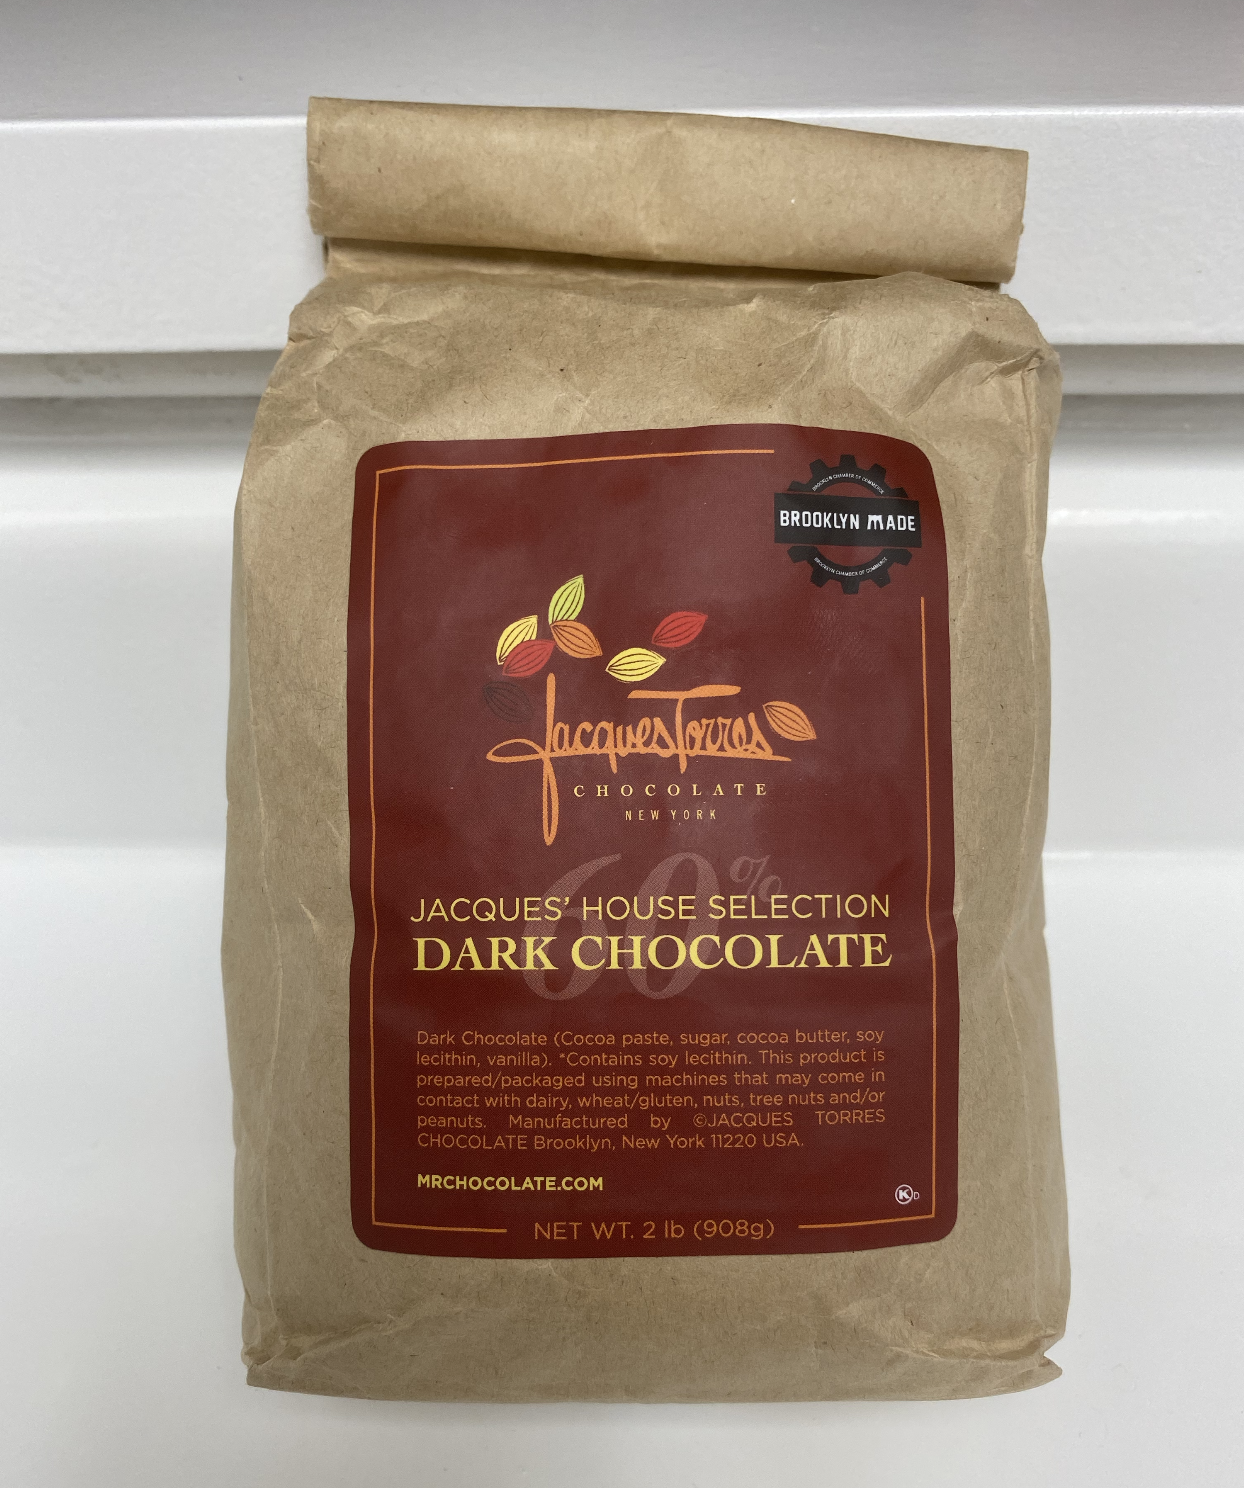 Jacques Torres' dark chocolate